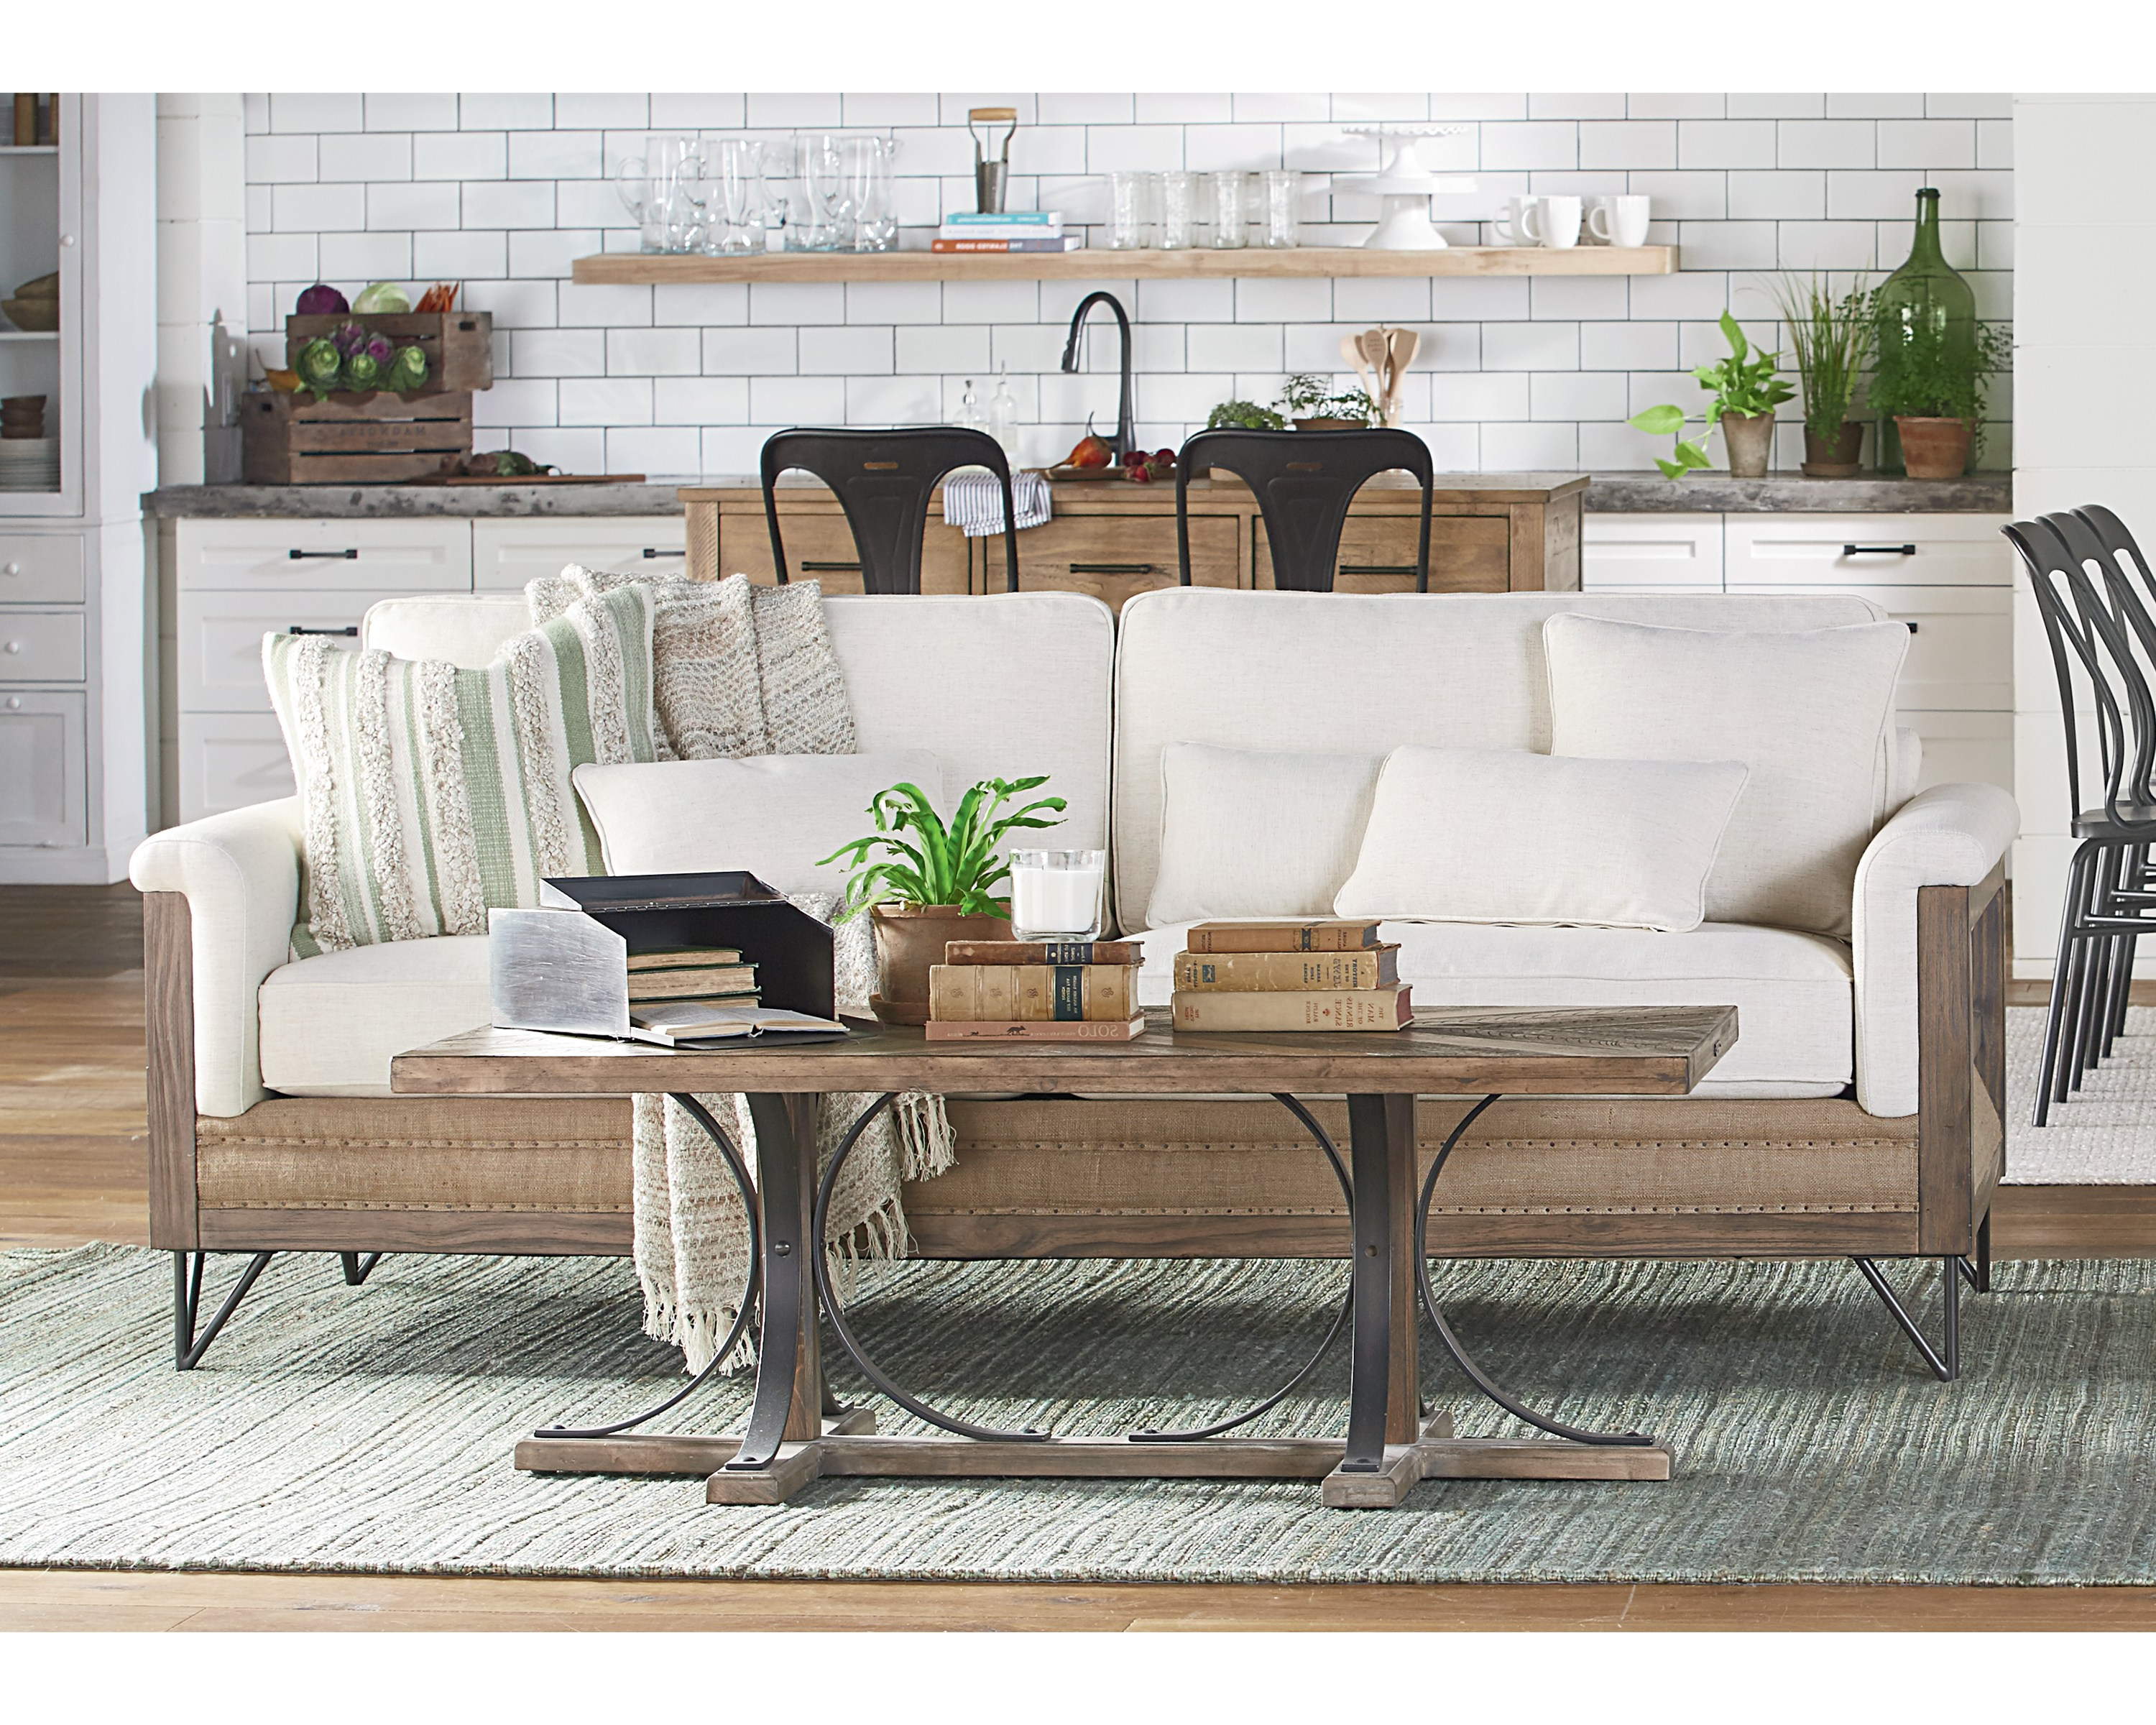 Paradigm Sofa – Magnolia Home With Regard To Famous Magnolia Home Paradigm Sofa Chairs By Joanna Gaines (View 2 of 20)